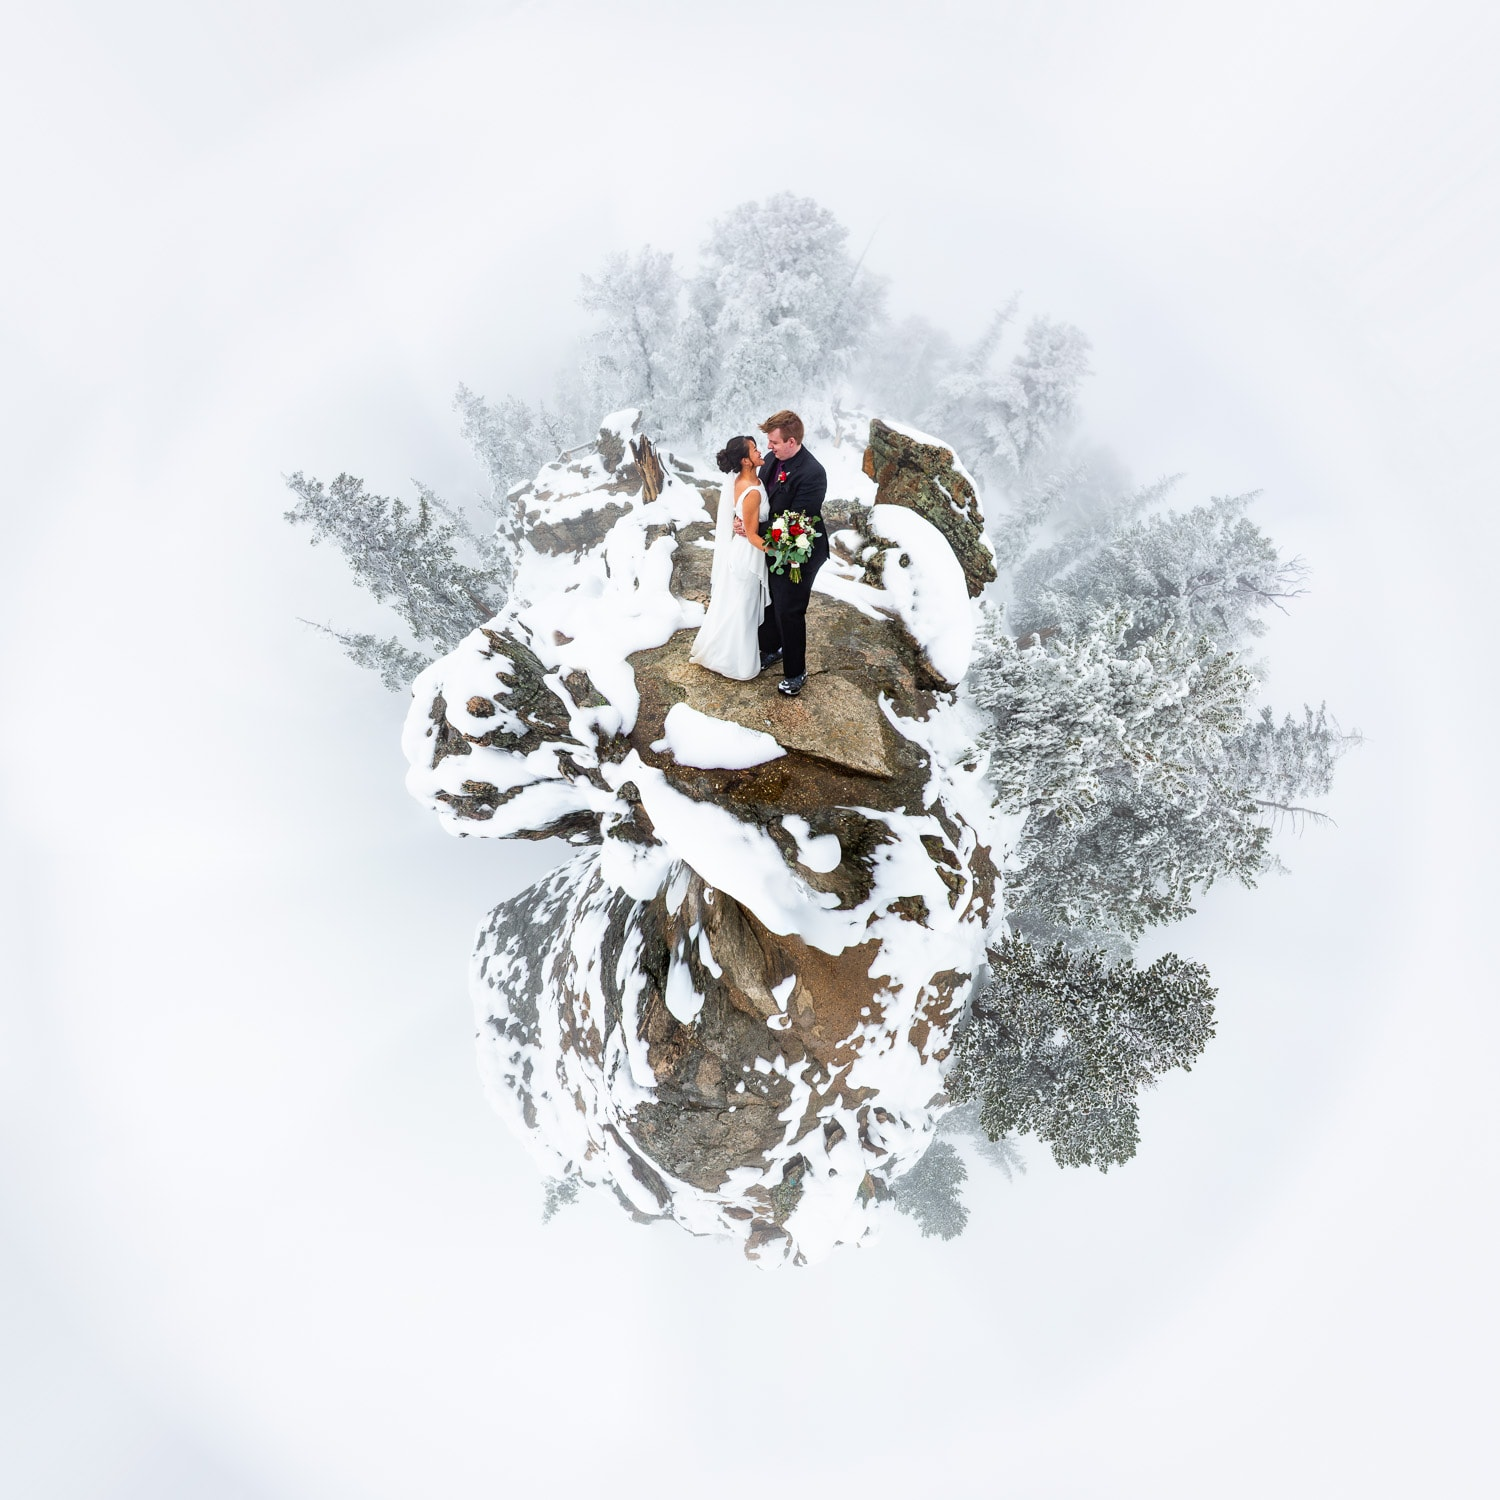 A tiny planet of a winter wedding couple in the mountains.